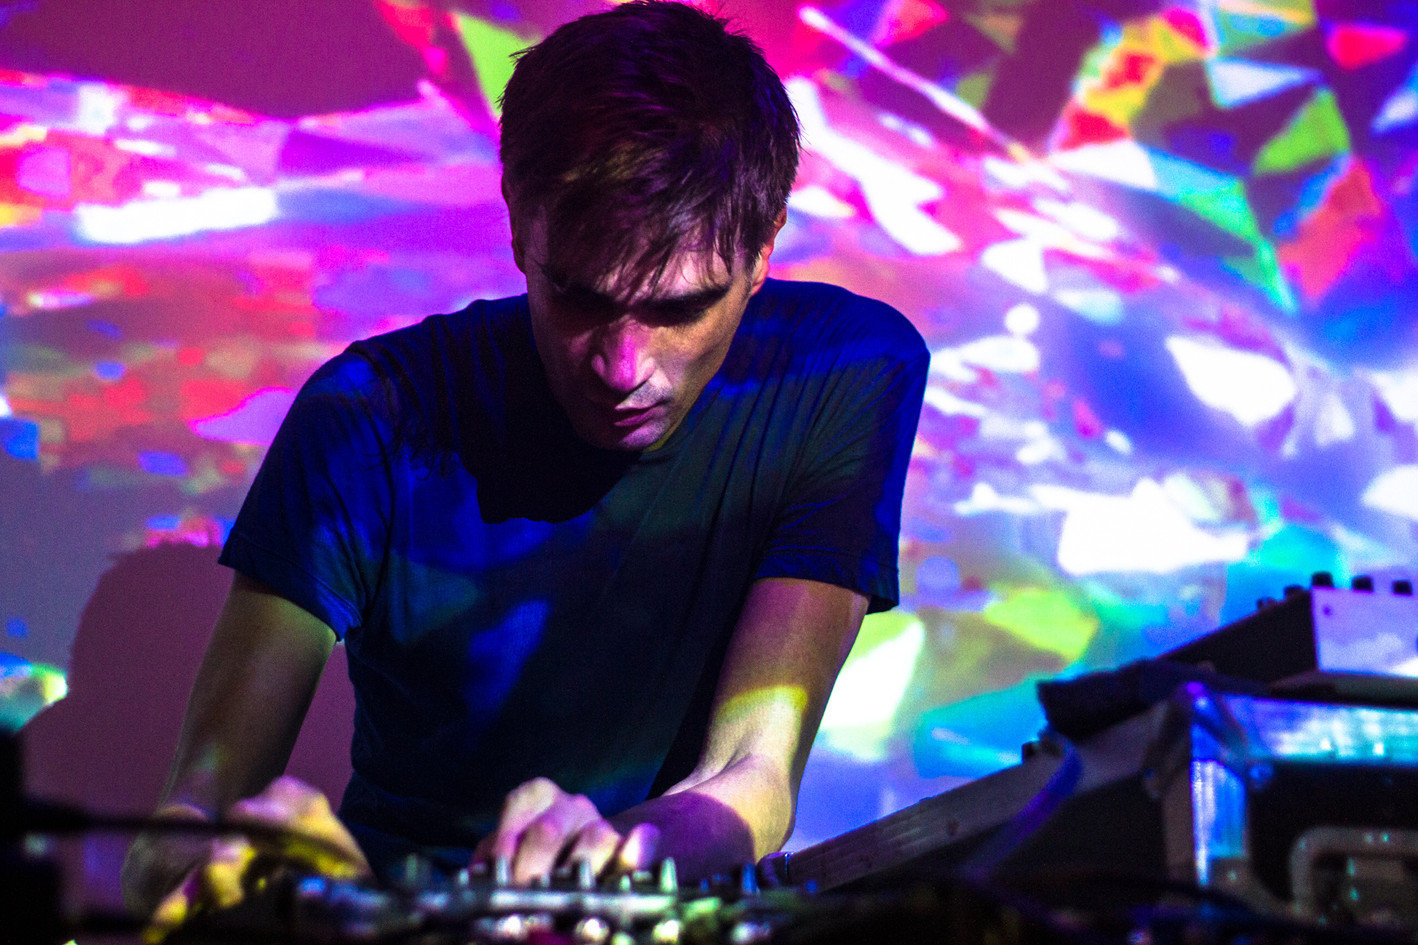 224167-11176479-JON_HOPKINS-GORILLA-RICH